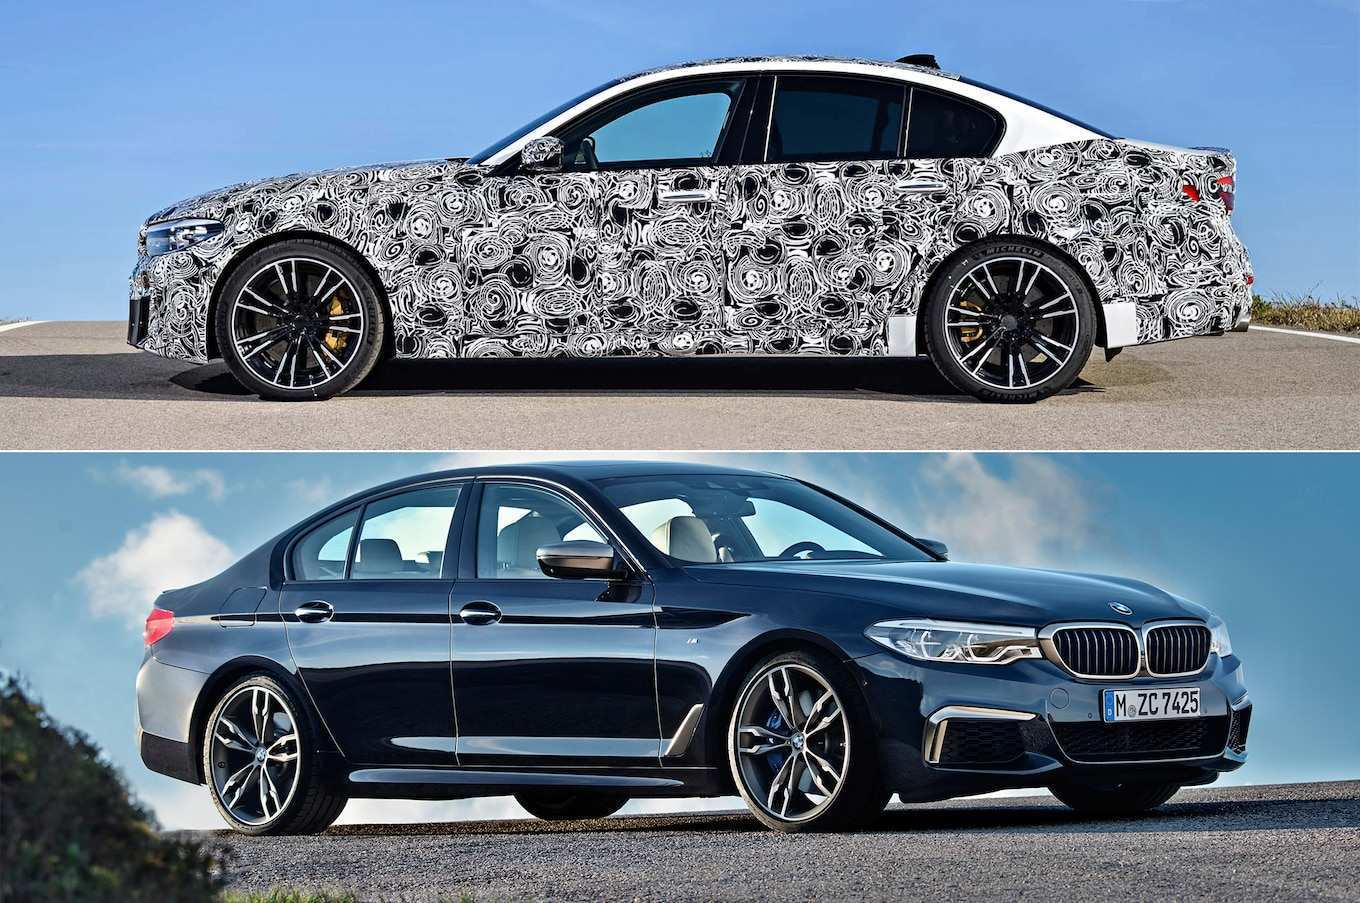 65 Best 2020 BMW M5 Xdrive Awd Rumors